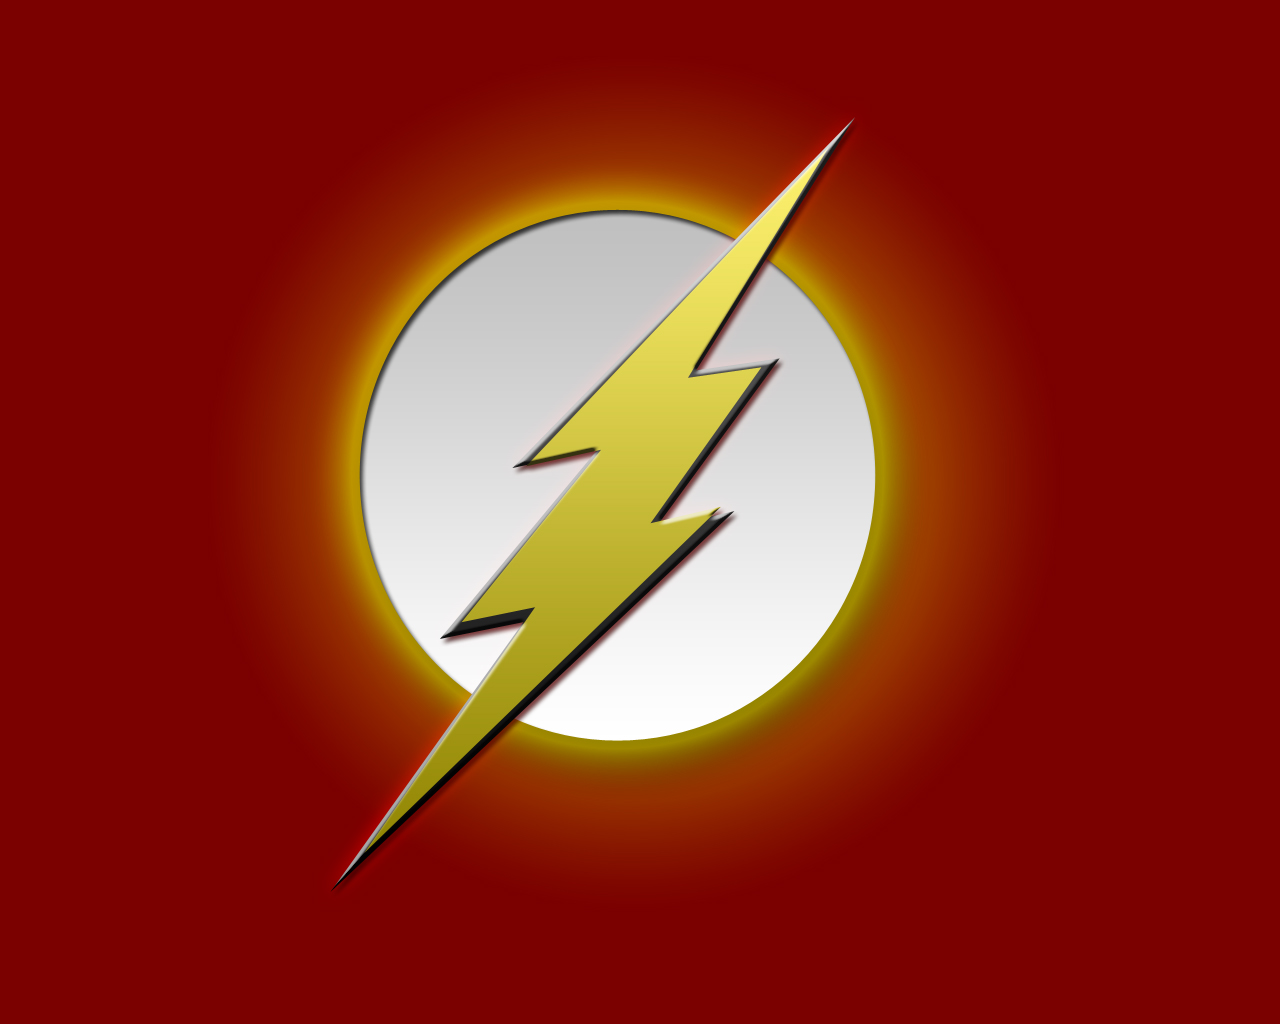 flash superhero logo - photo #19